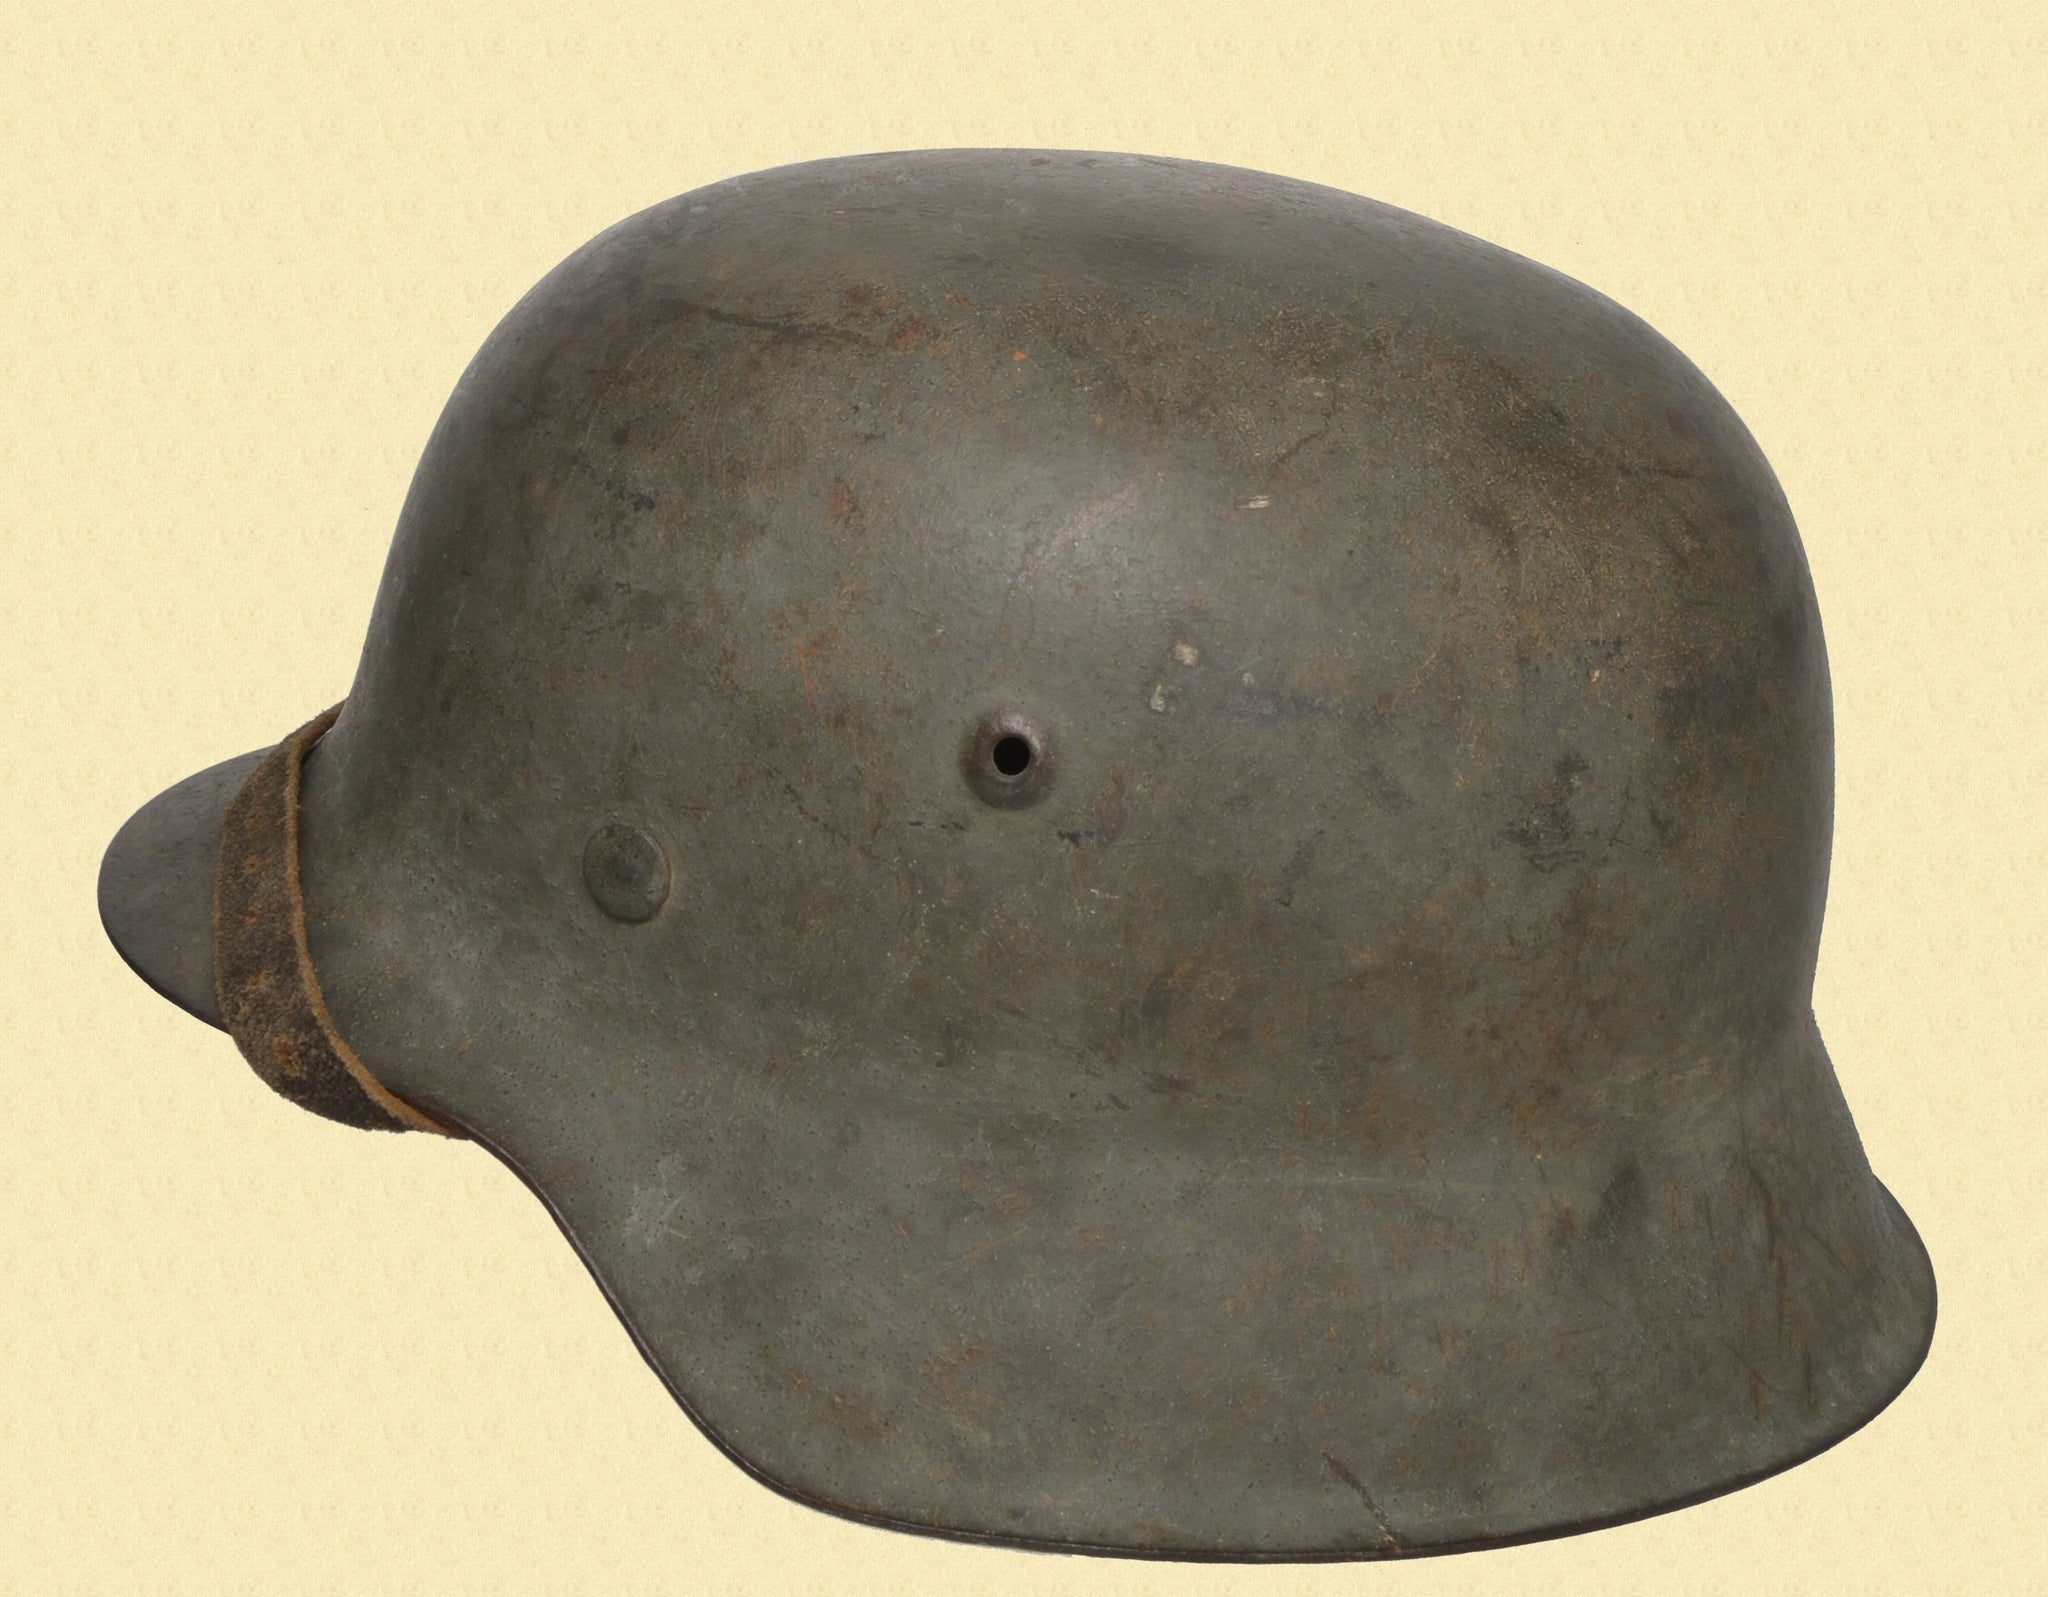 GERMAN M42 HEER HELMET